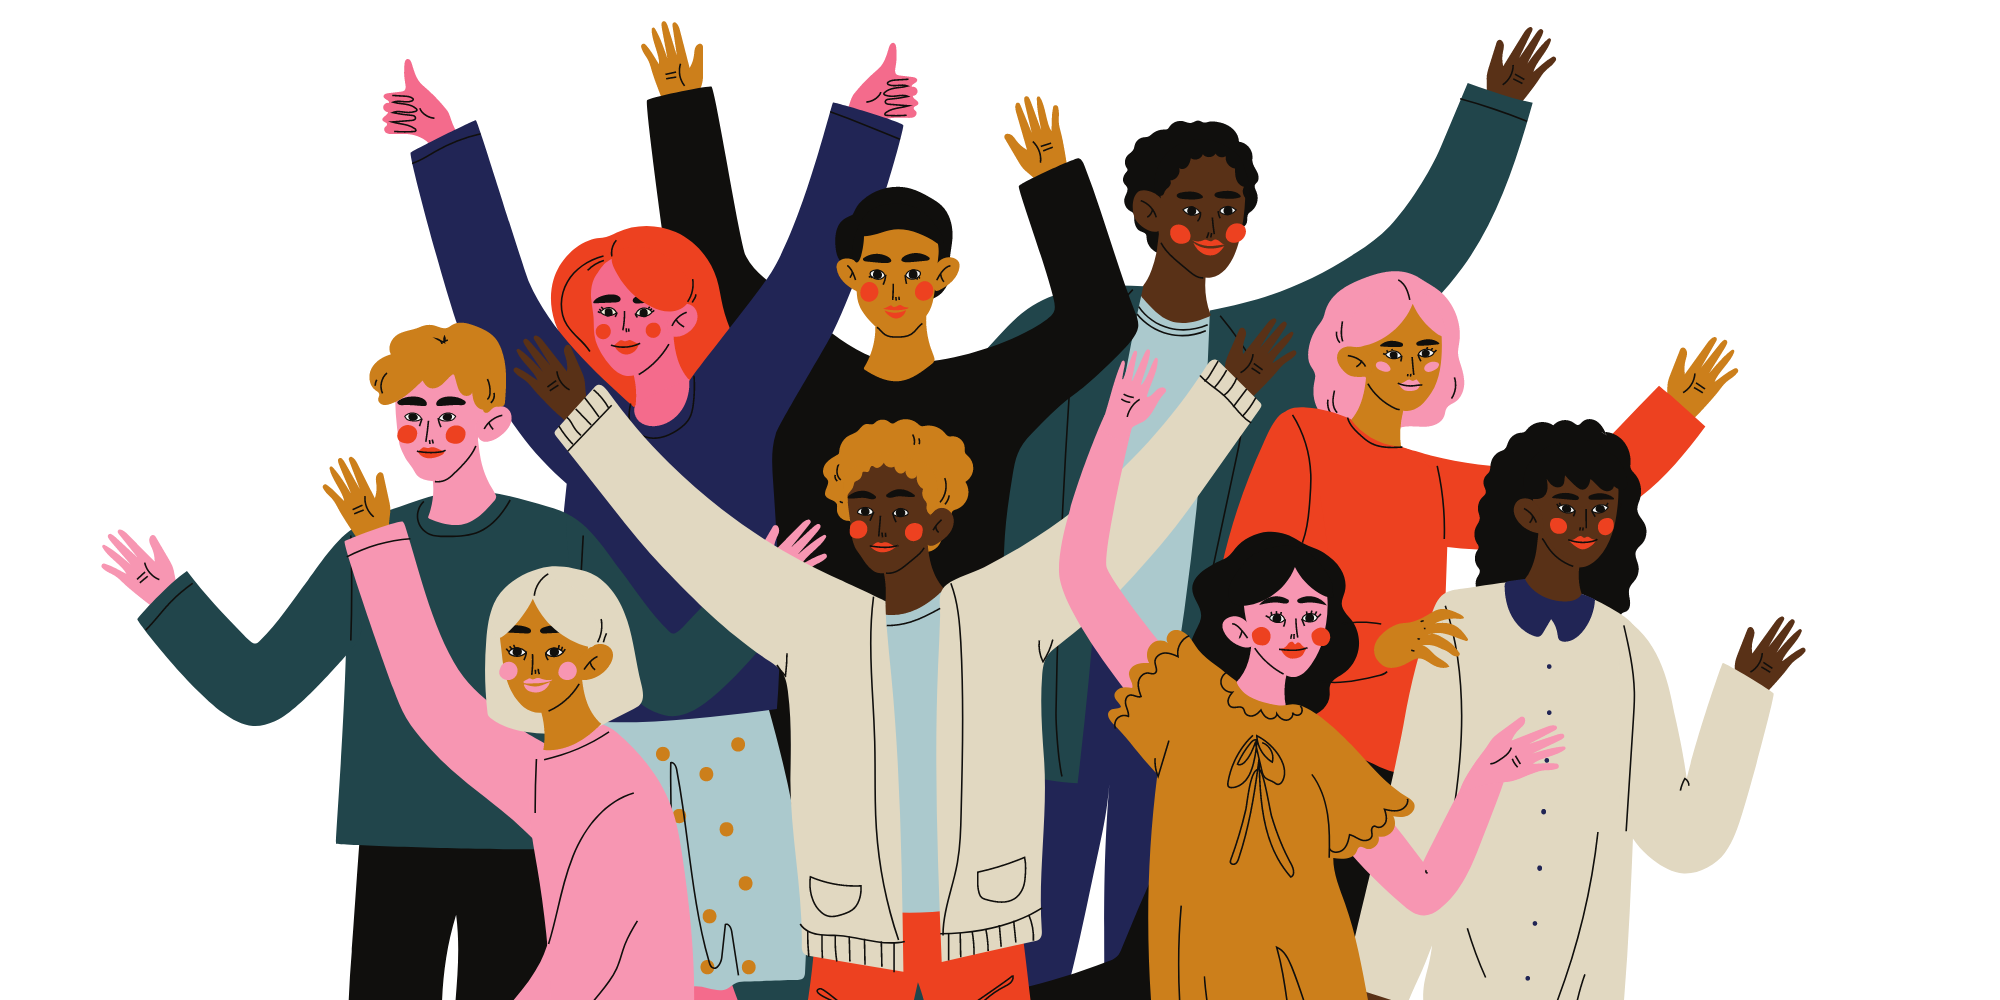 Graphic diversity image - 9 diverse happy people with hands up